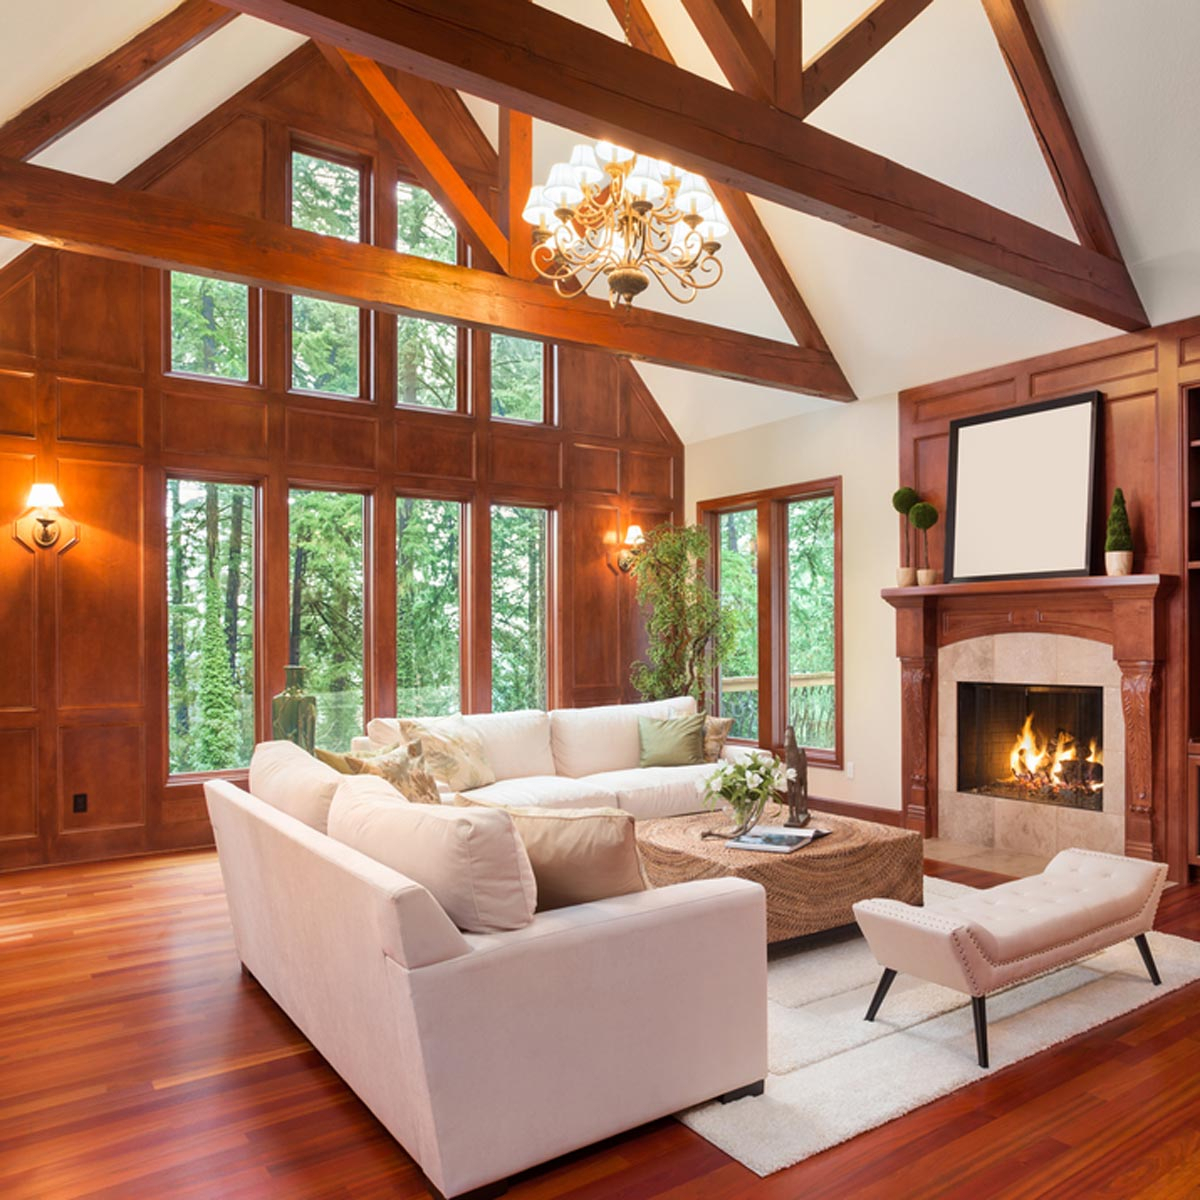 10 Nice Wood Trim Ideas For Walls 10 new trends in wood trim for 2018 the family handyman 1